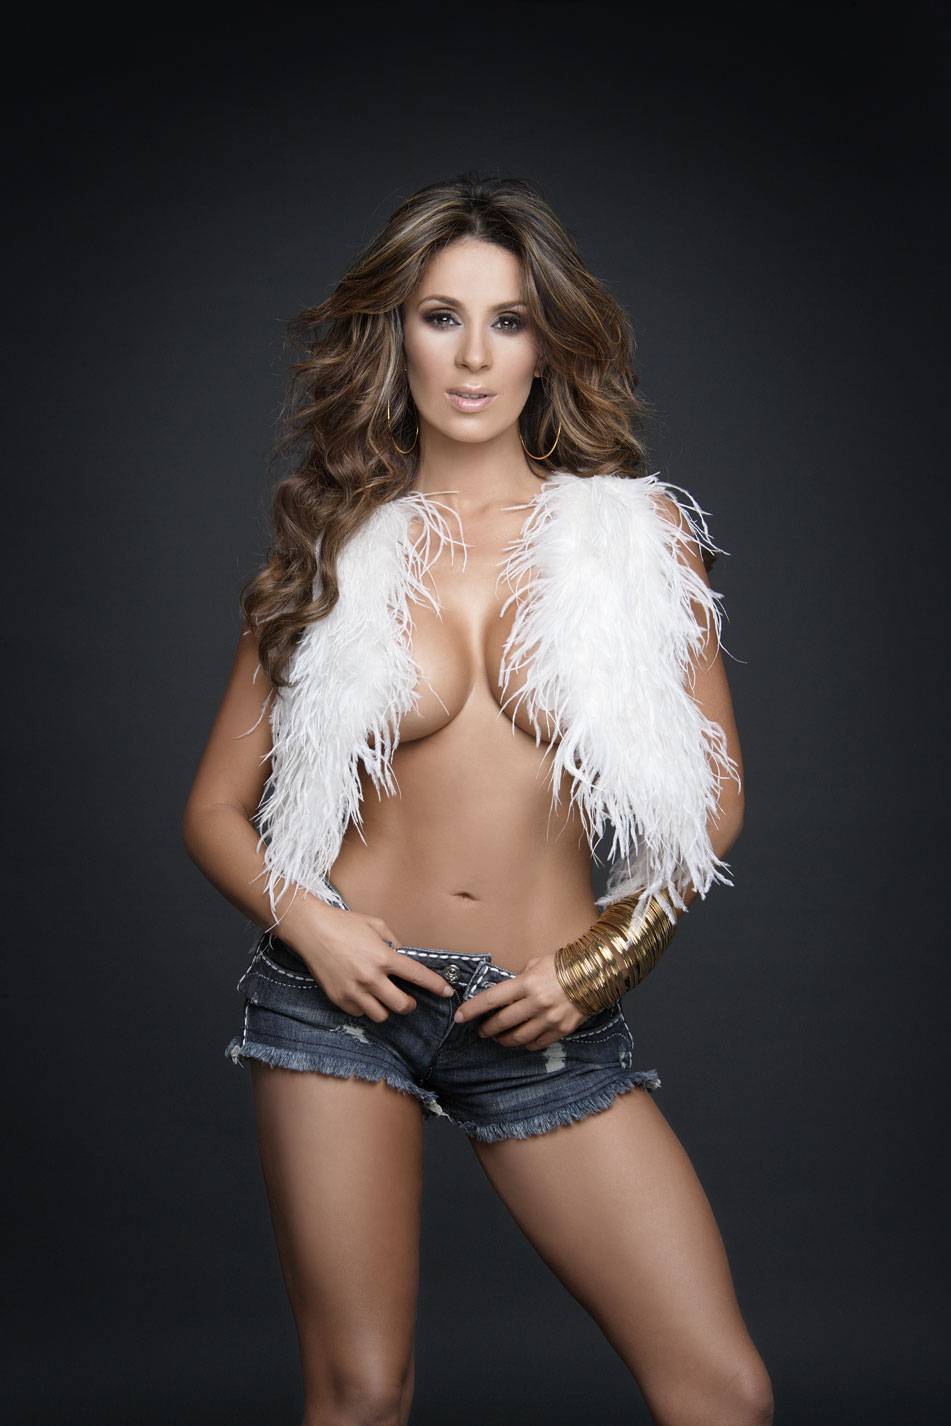 Catherine siachoque hot nude